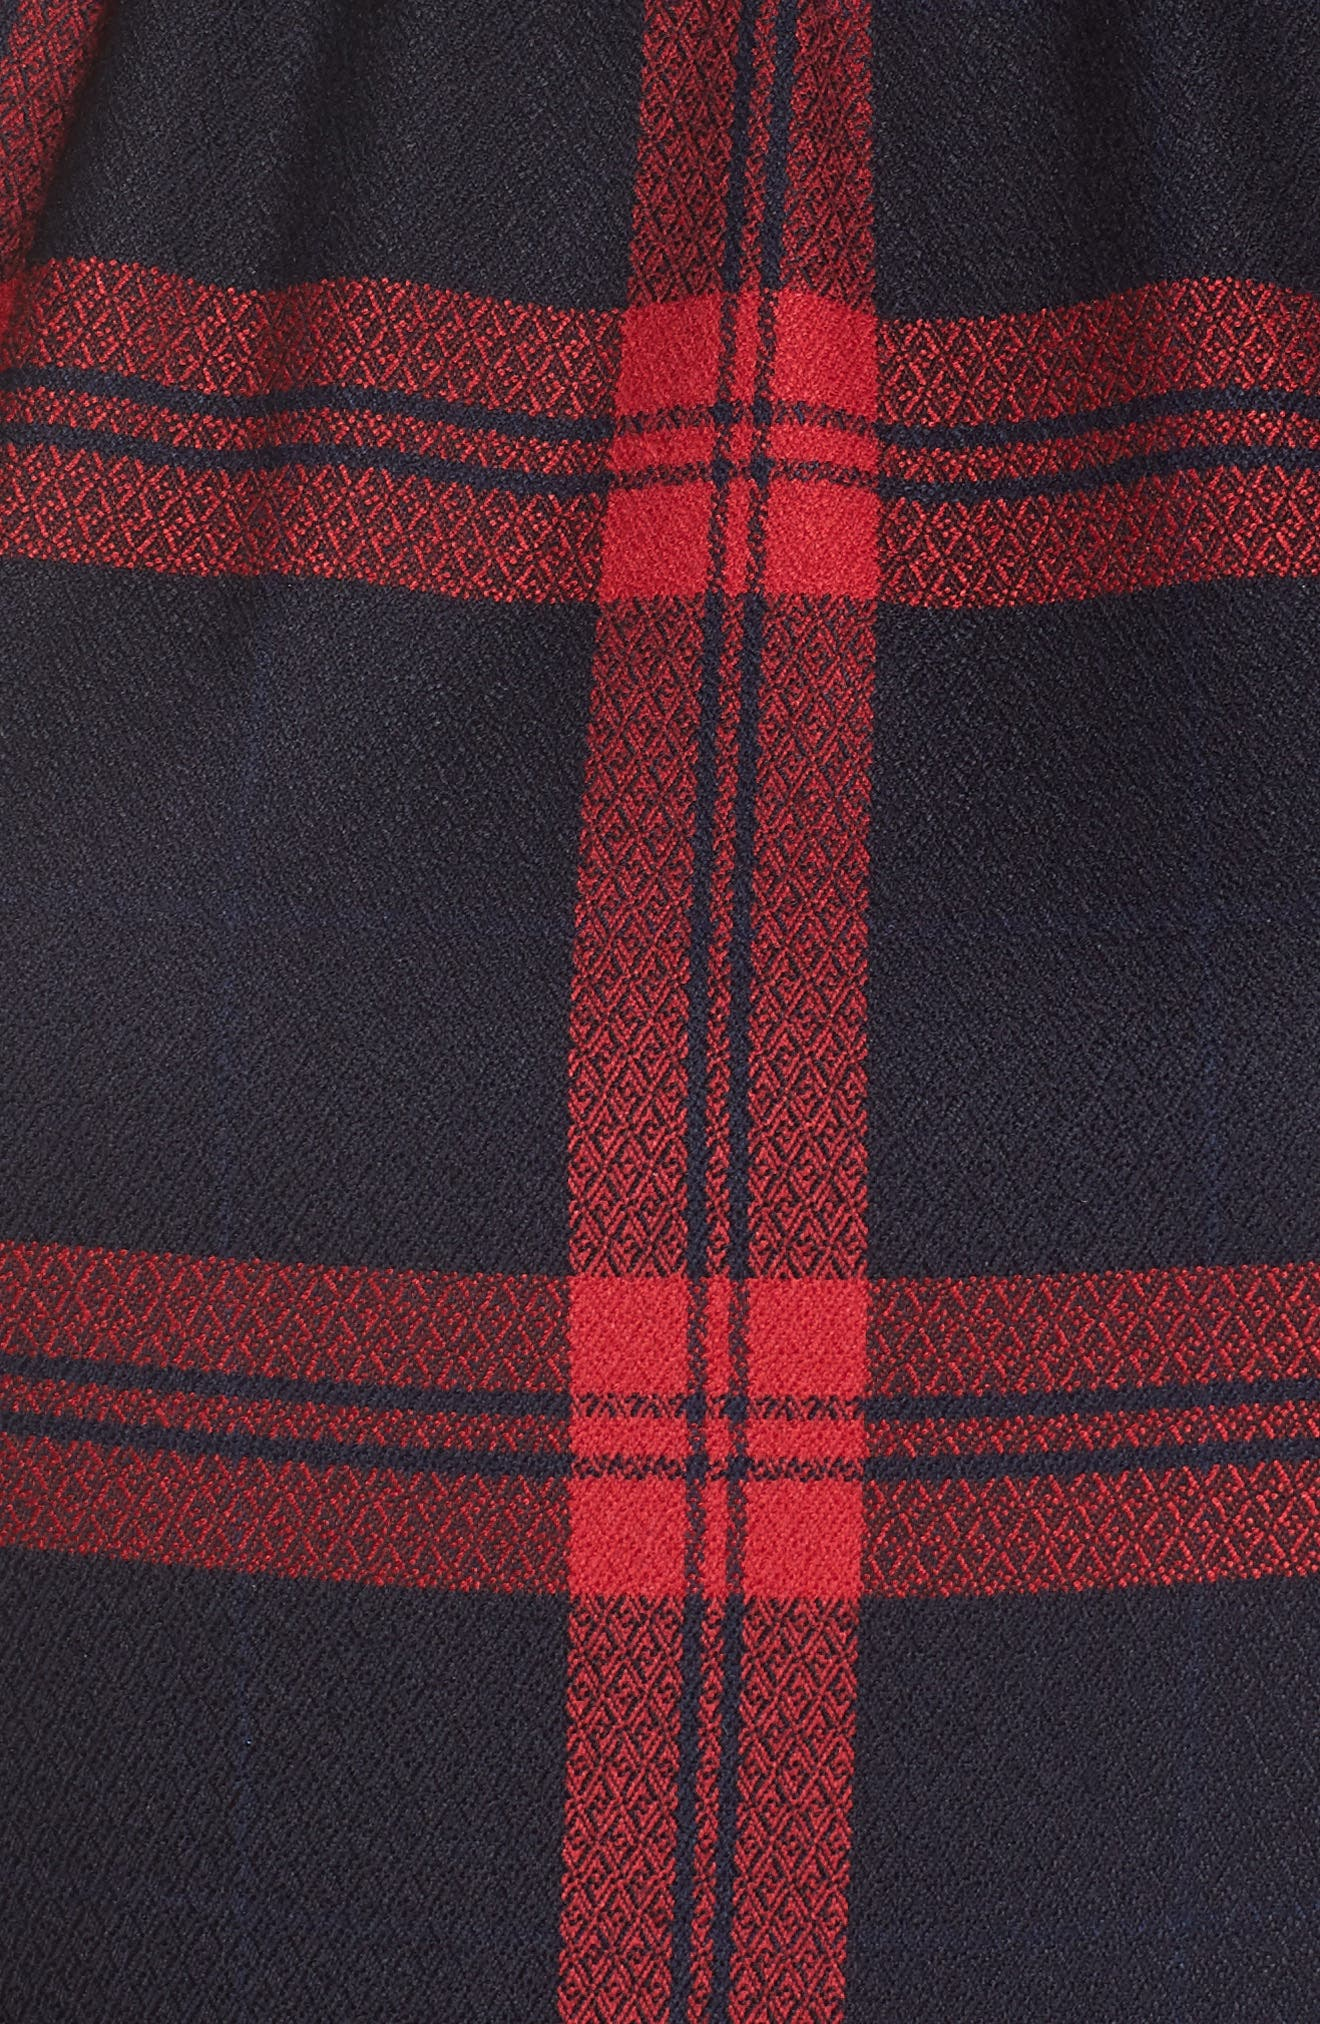 Jacquard Fit & Flare Dress,                             Alternate thumbnail 6, color,                             RED- NAVY PLAID